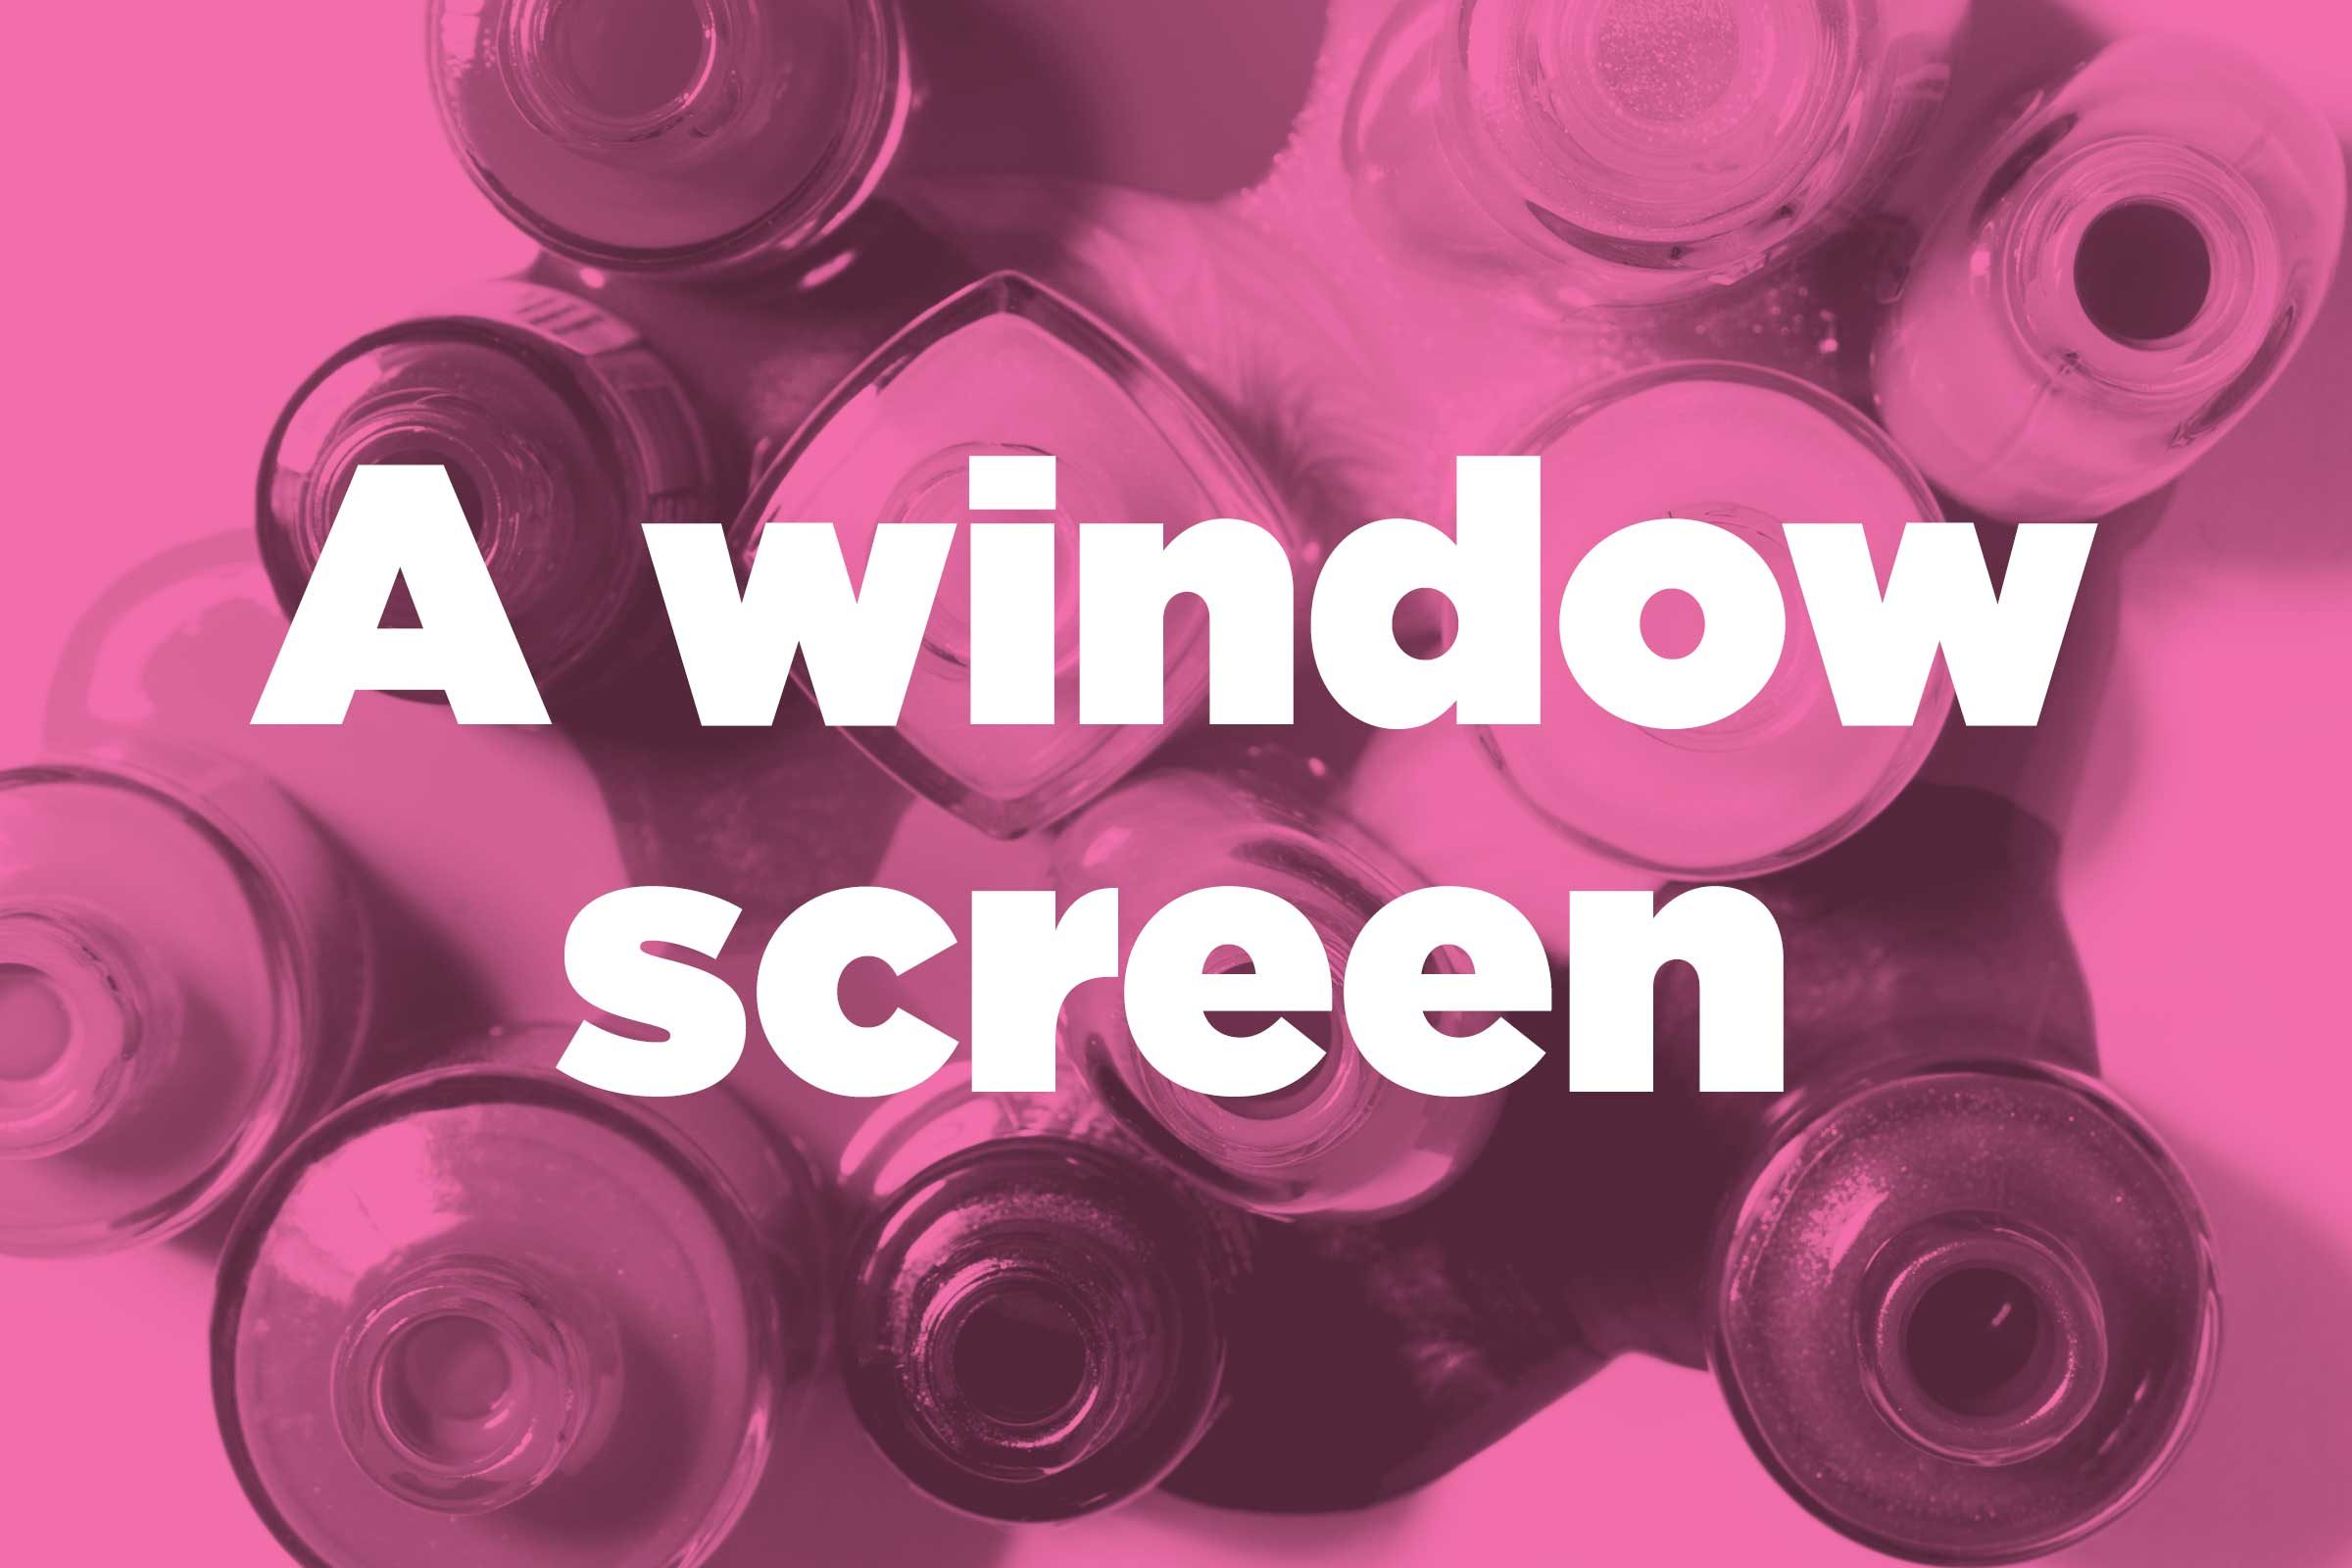 Fix a window screen